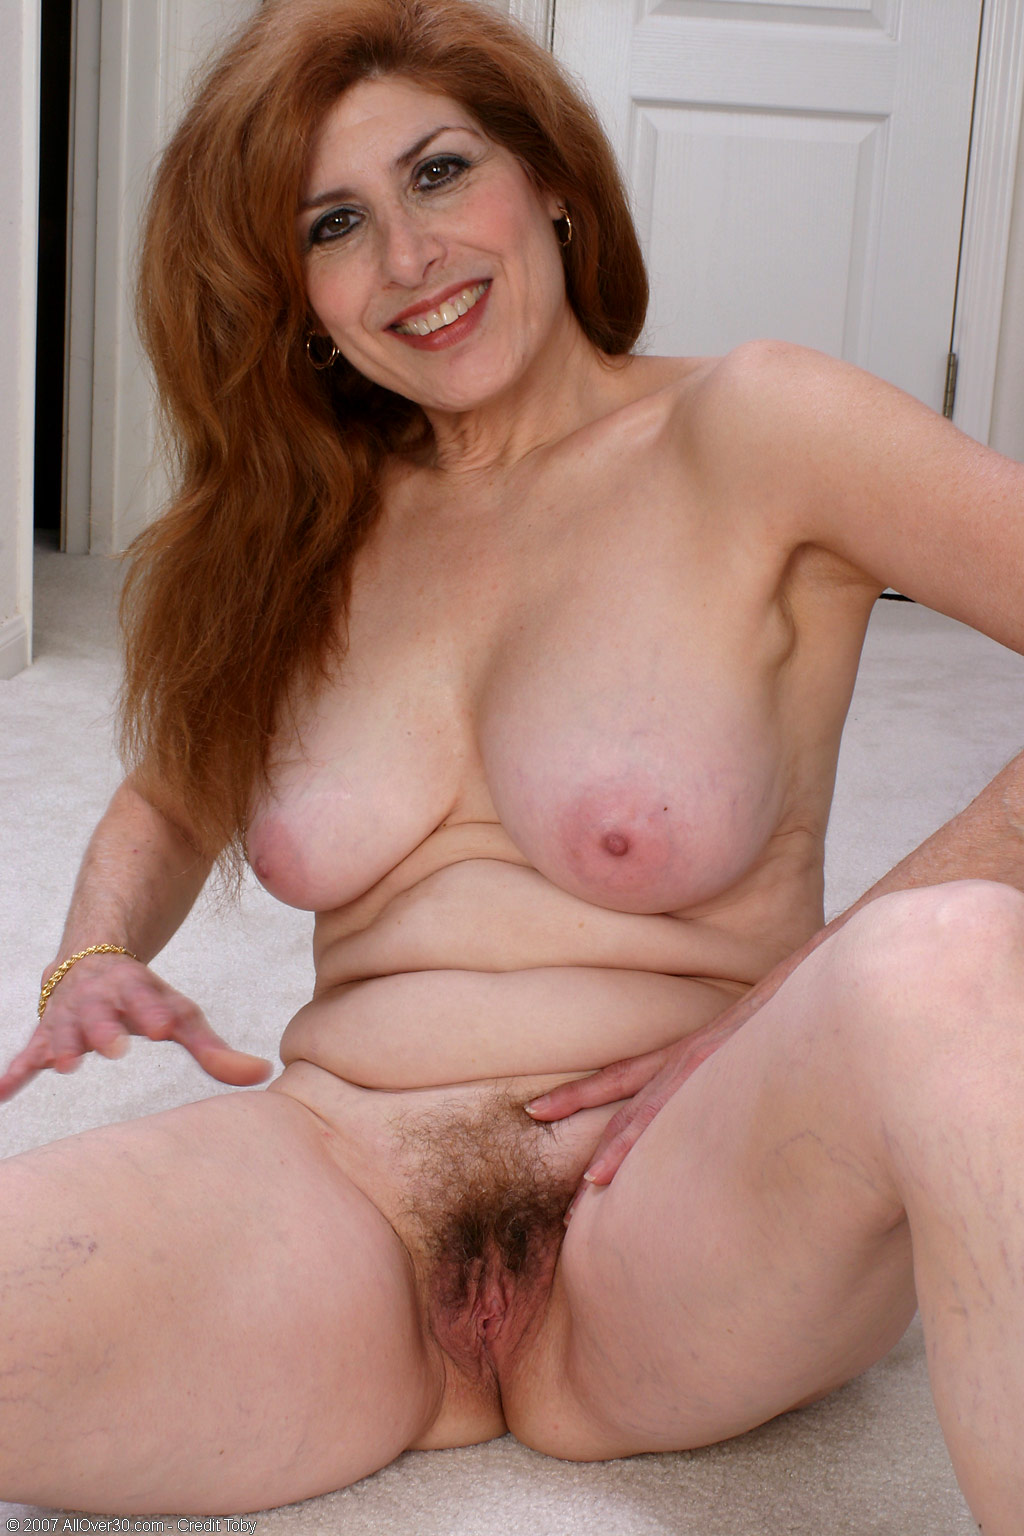 nudepictures of horny mature women anyone gawk